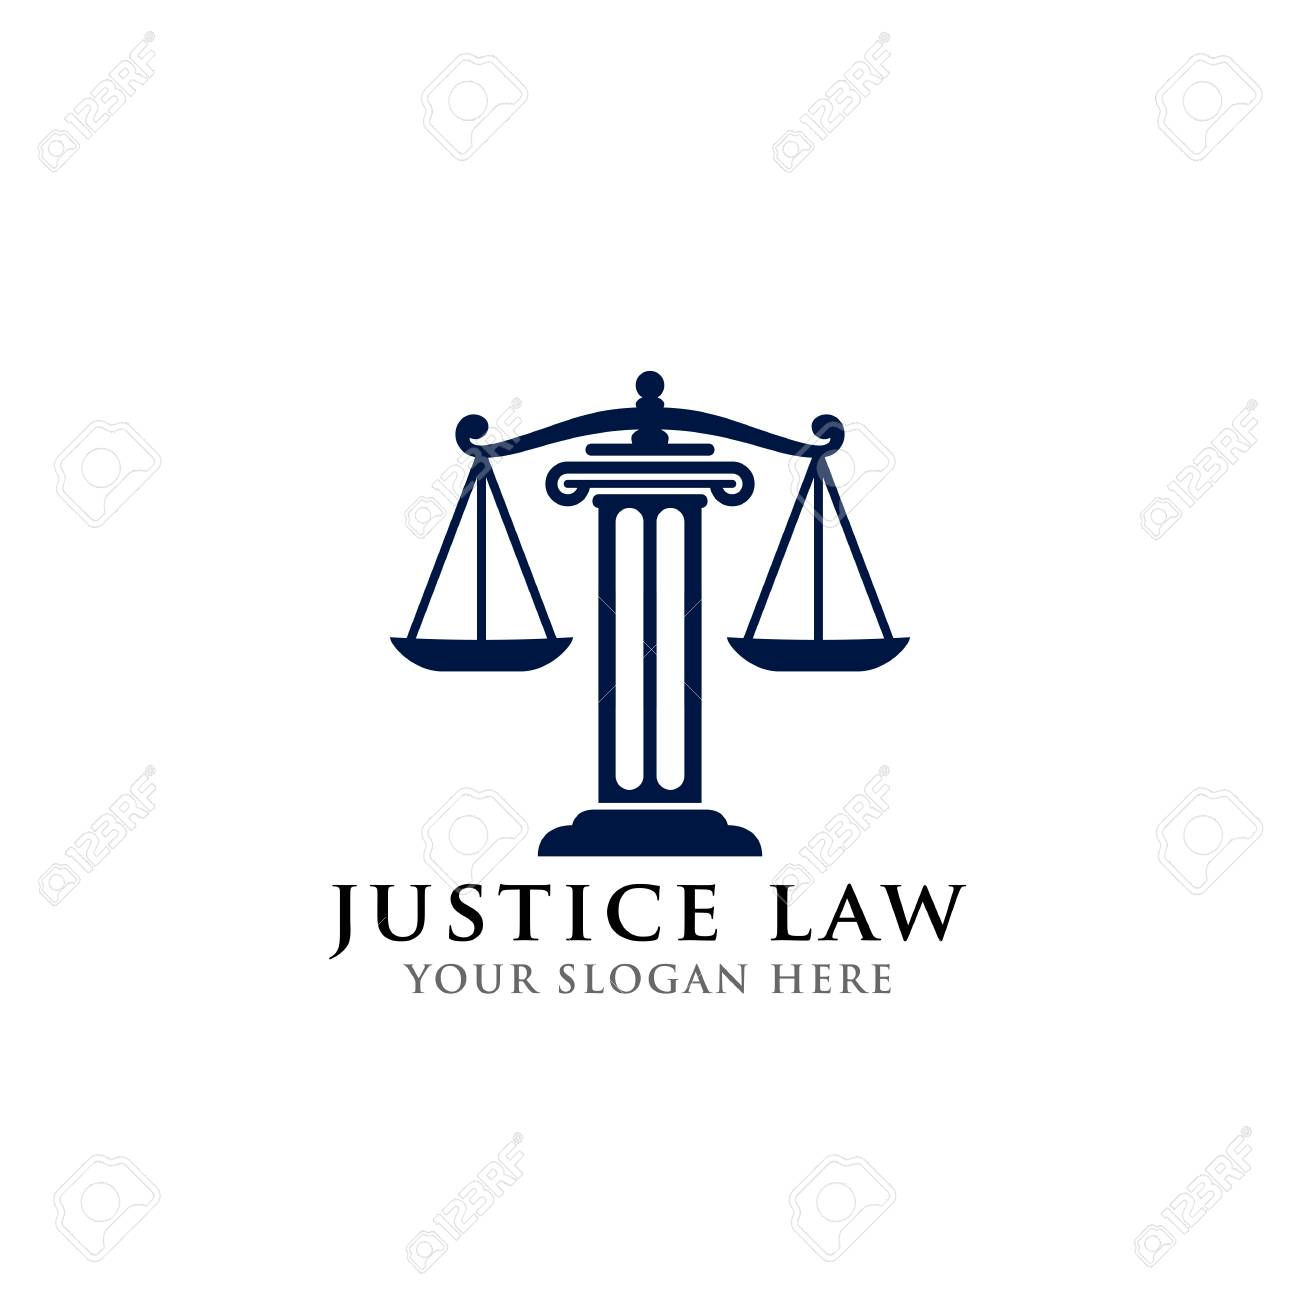 justice law logo design template. attorney logo vector design. scales and pillar of justice vector illustration - 117628874